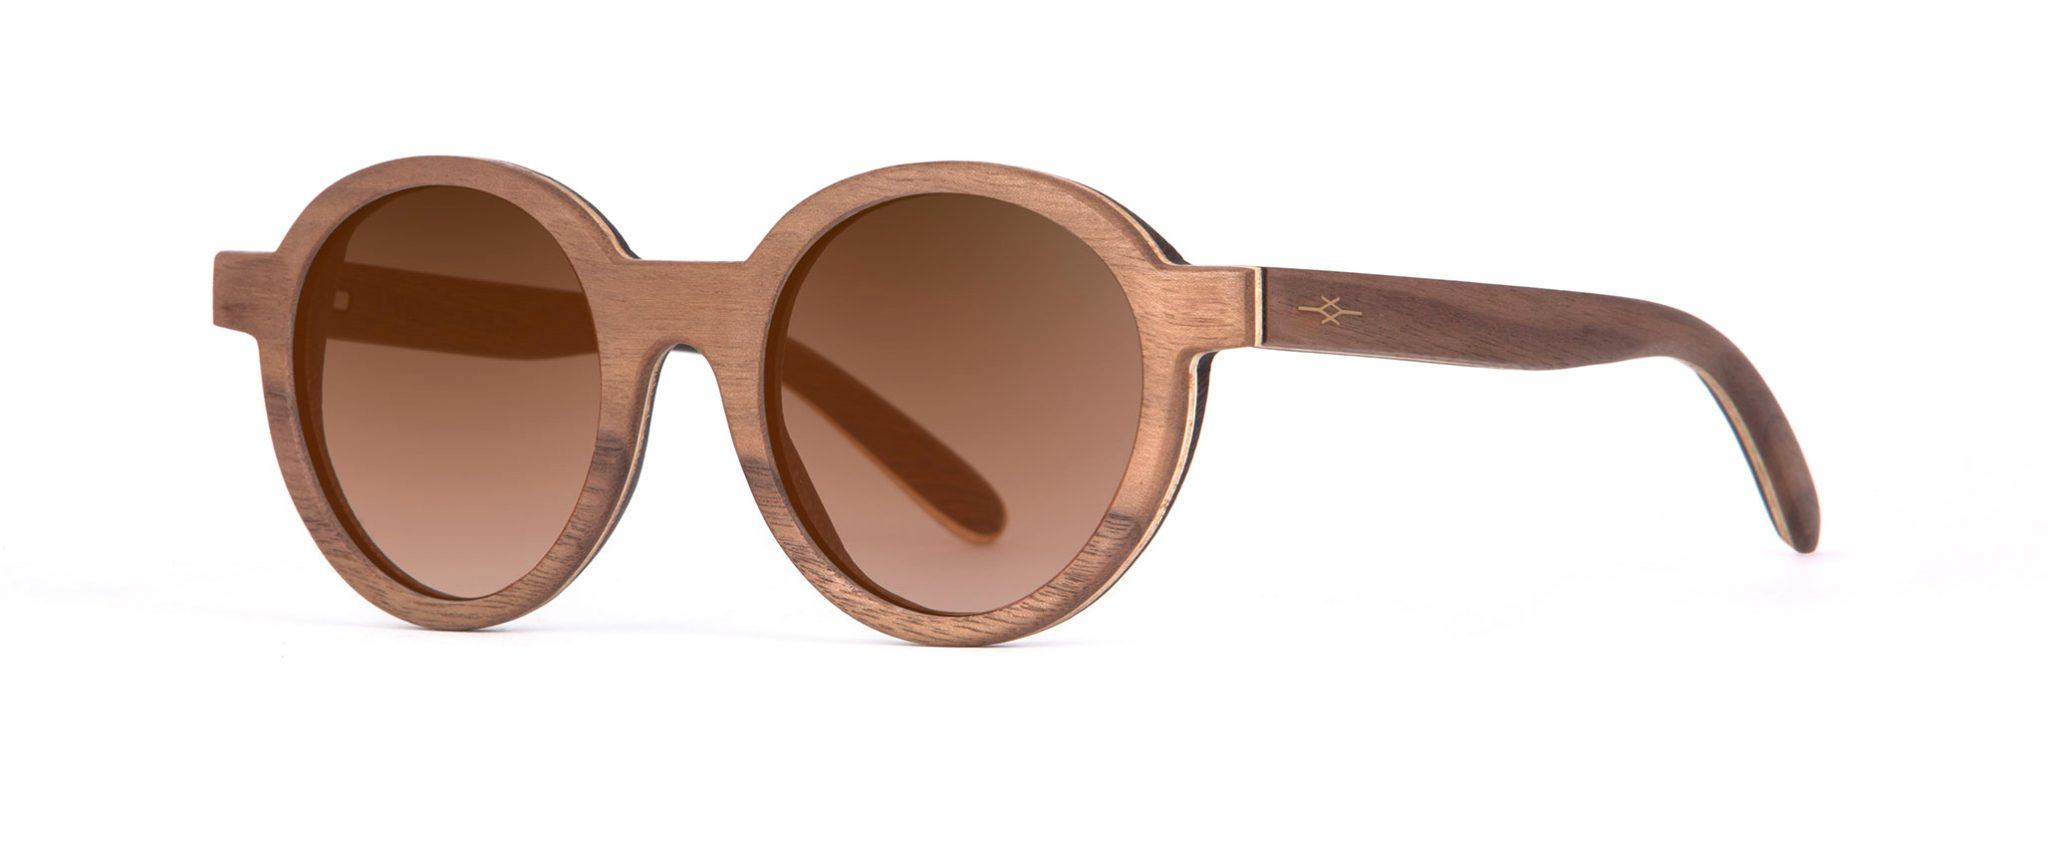 Hippy Walnut Round Designer Sunglasses VAKAY